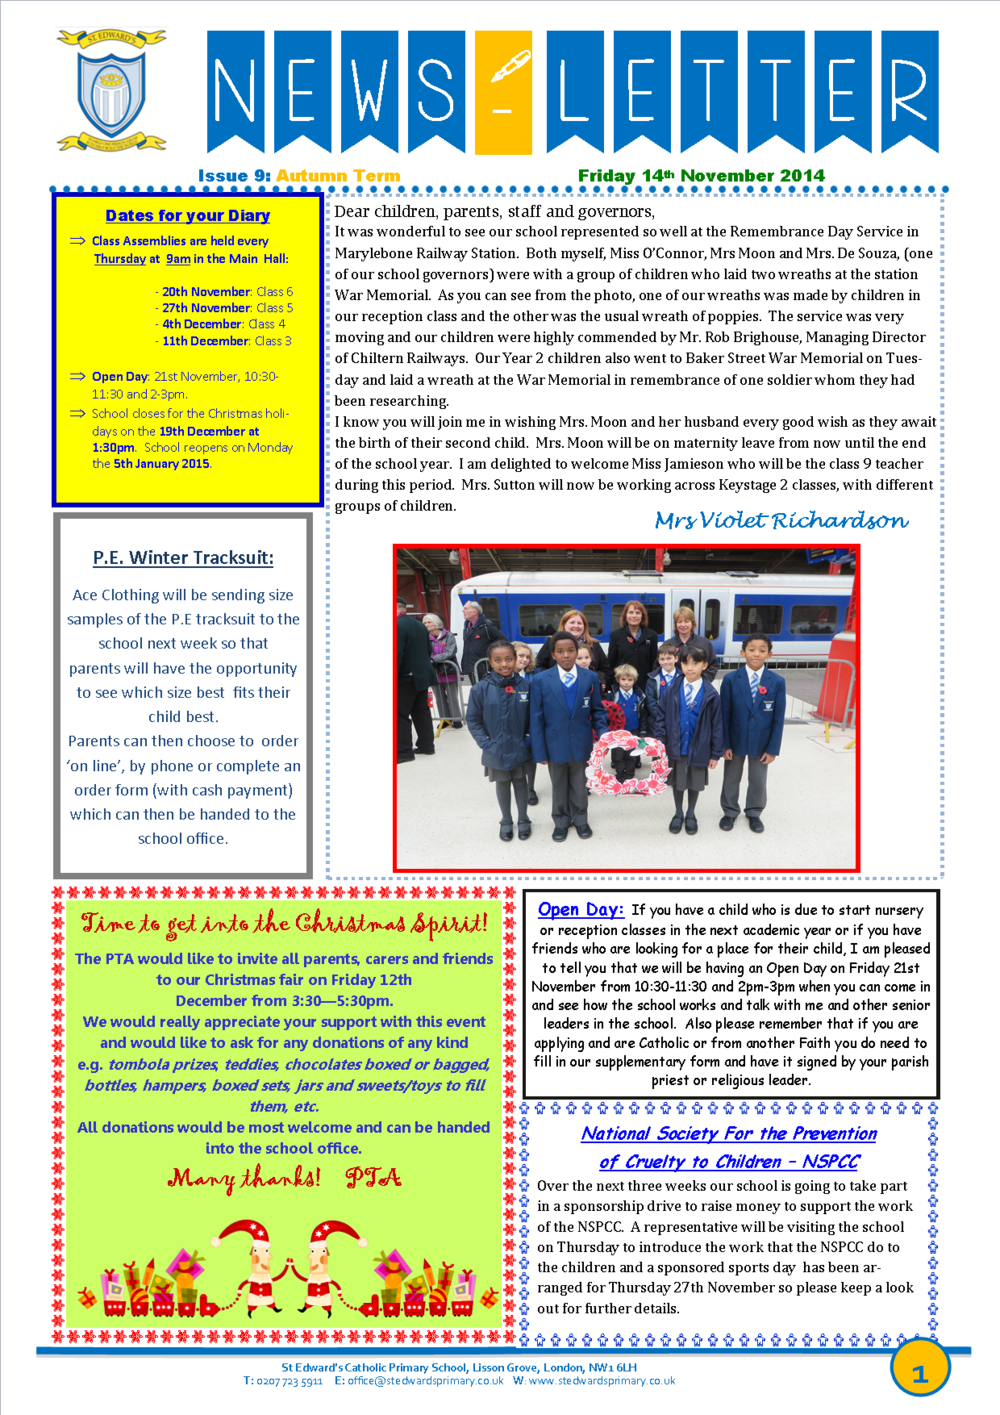 St Edward's Newsletter Issue 9 14 November 2014.png